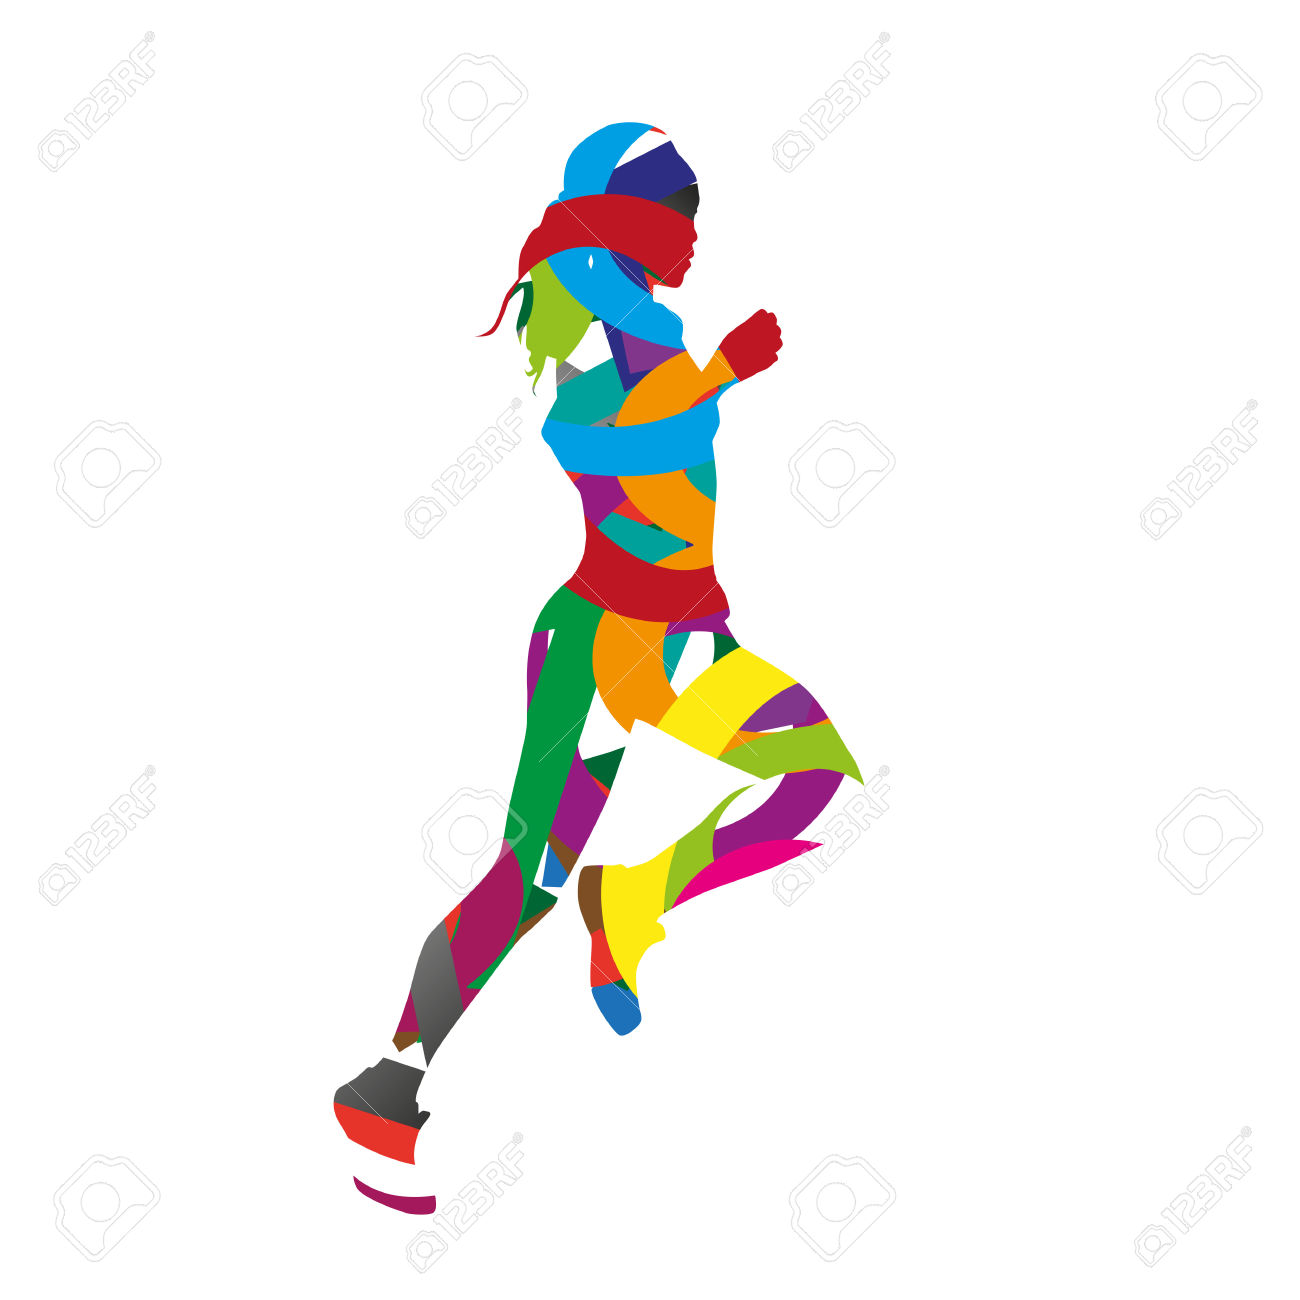 38567373-Abstract-colorful-running-girl-Stock-Vector-logo-sport-gym